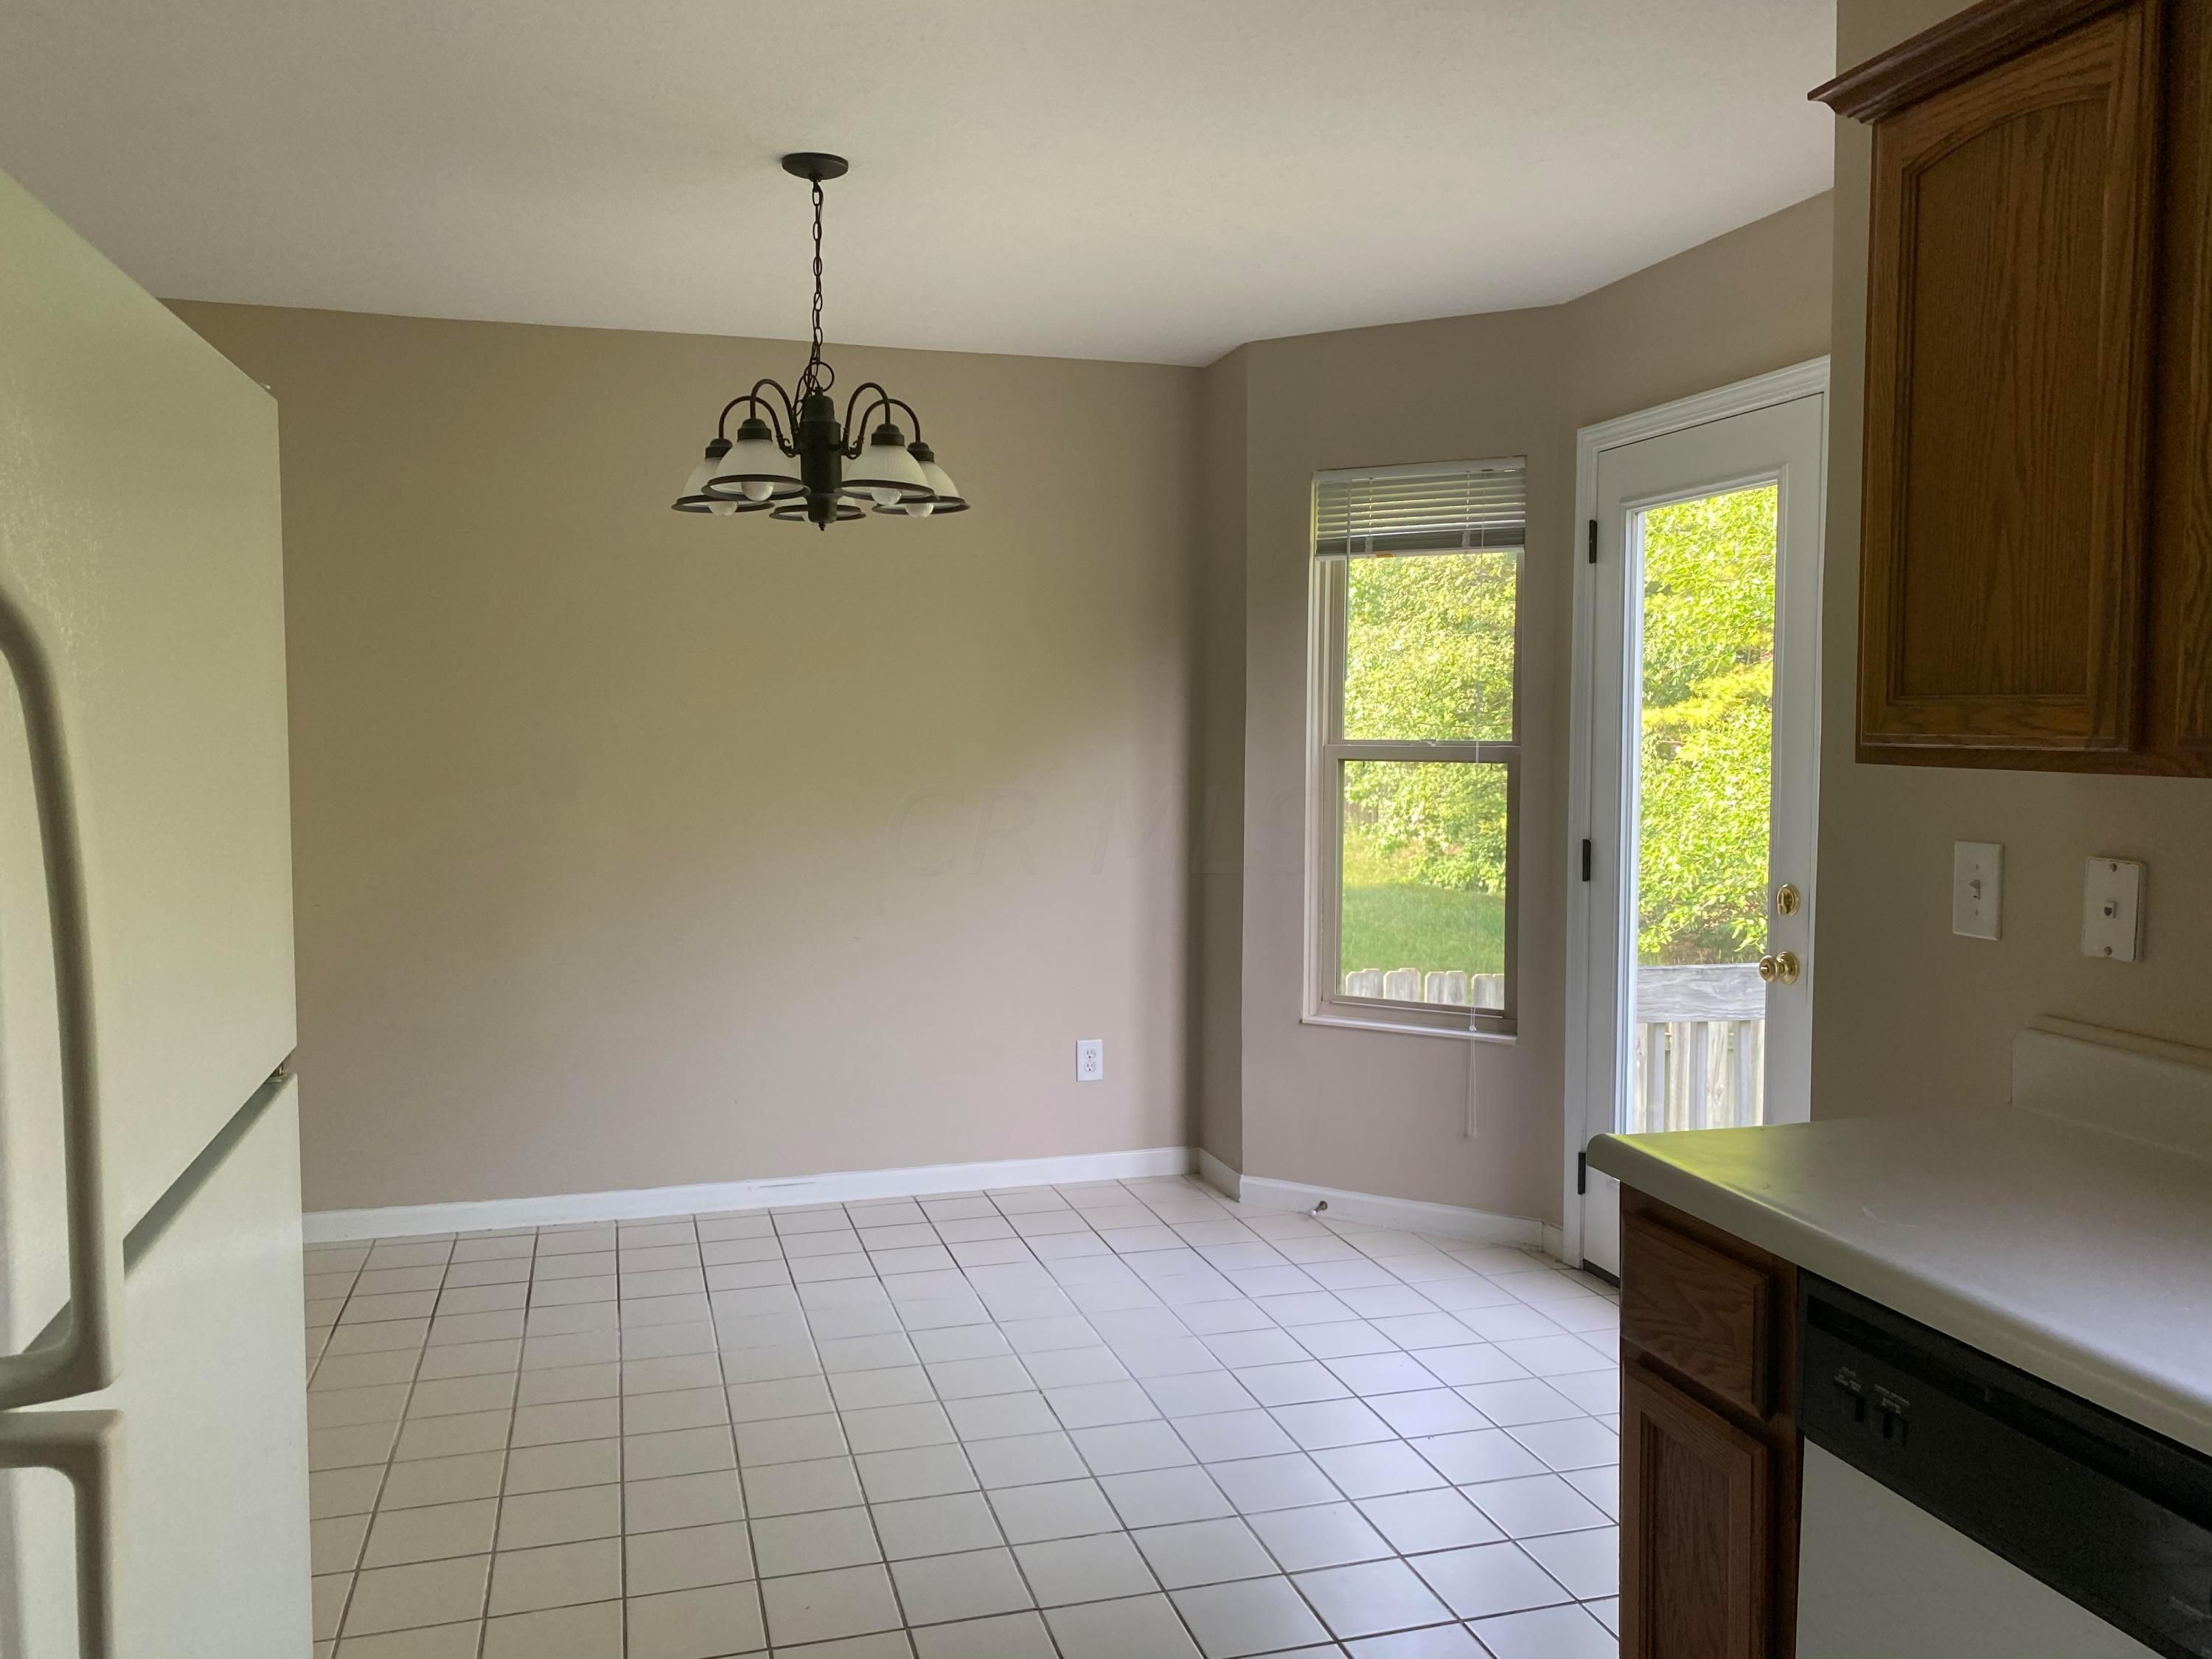 2522 Pressman Drive, Hilliard, Ohio 43026, 3 Bedrooms Bedrooms, ,3 BathroomsBathrooms,Residential,For Sale,Pressman,220020567